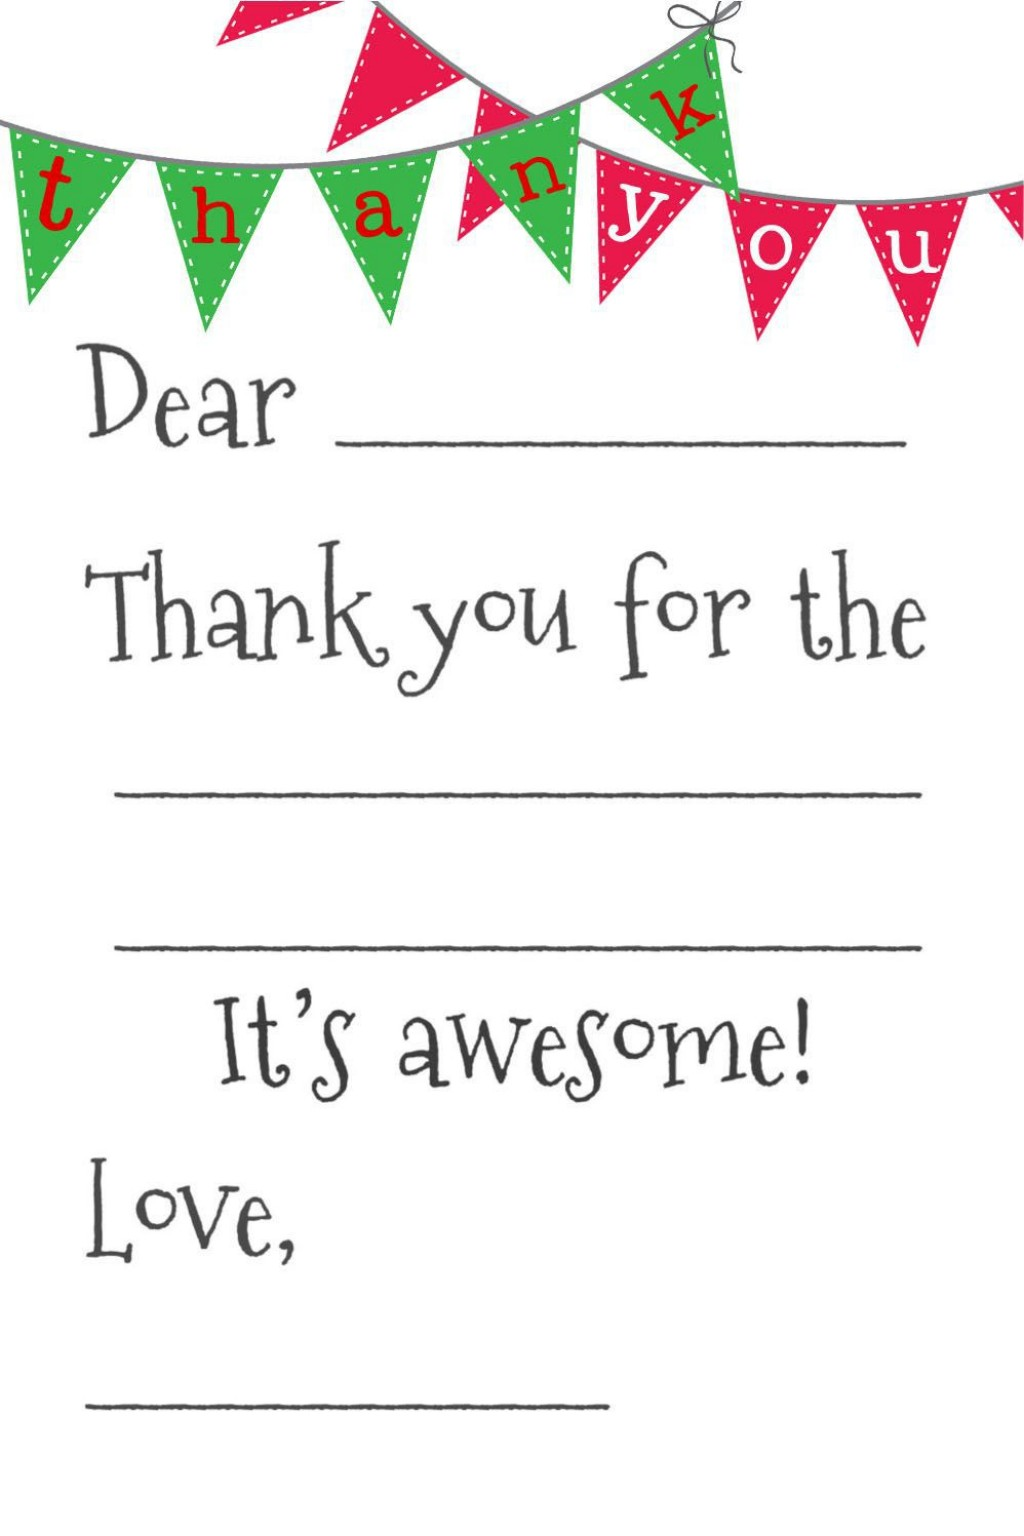 006 Marvelou Thank You Note Card Template Word Concept Large